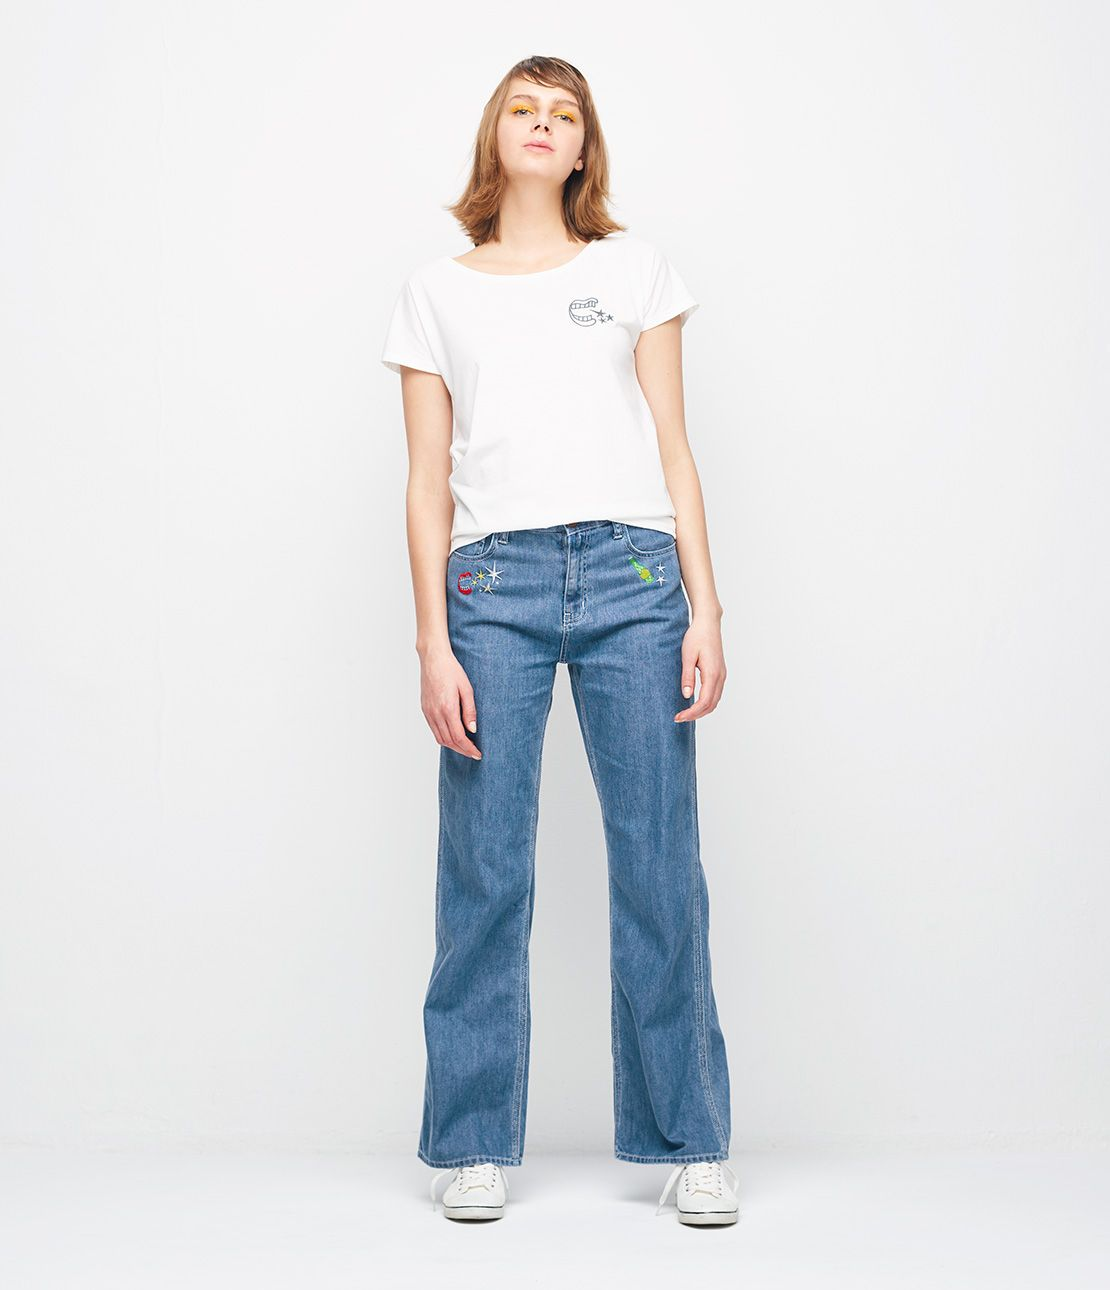 JRK camp embroidered denim